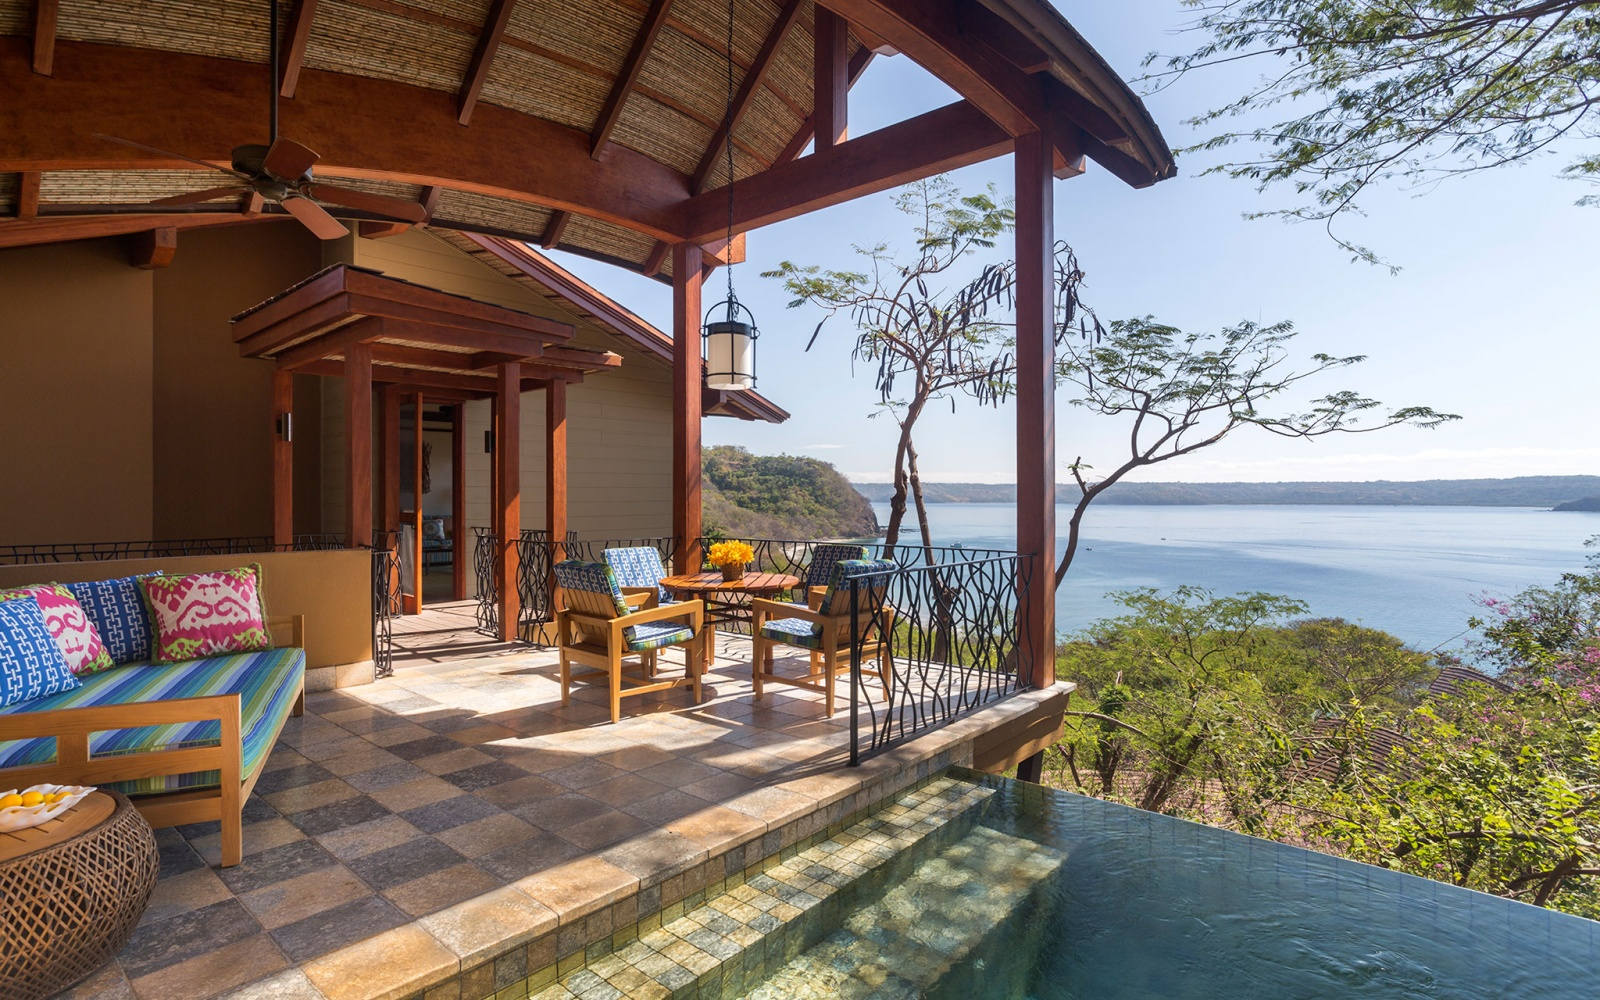 Best Hotel in Central & South America: Four Seasons Costa Rica at Peninsula Papagayo